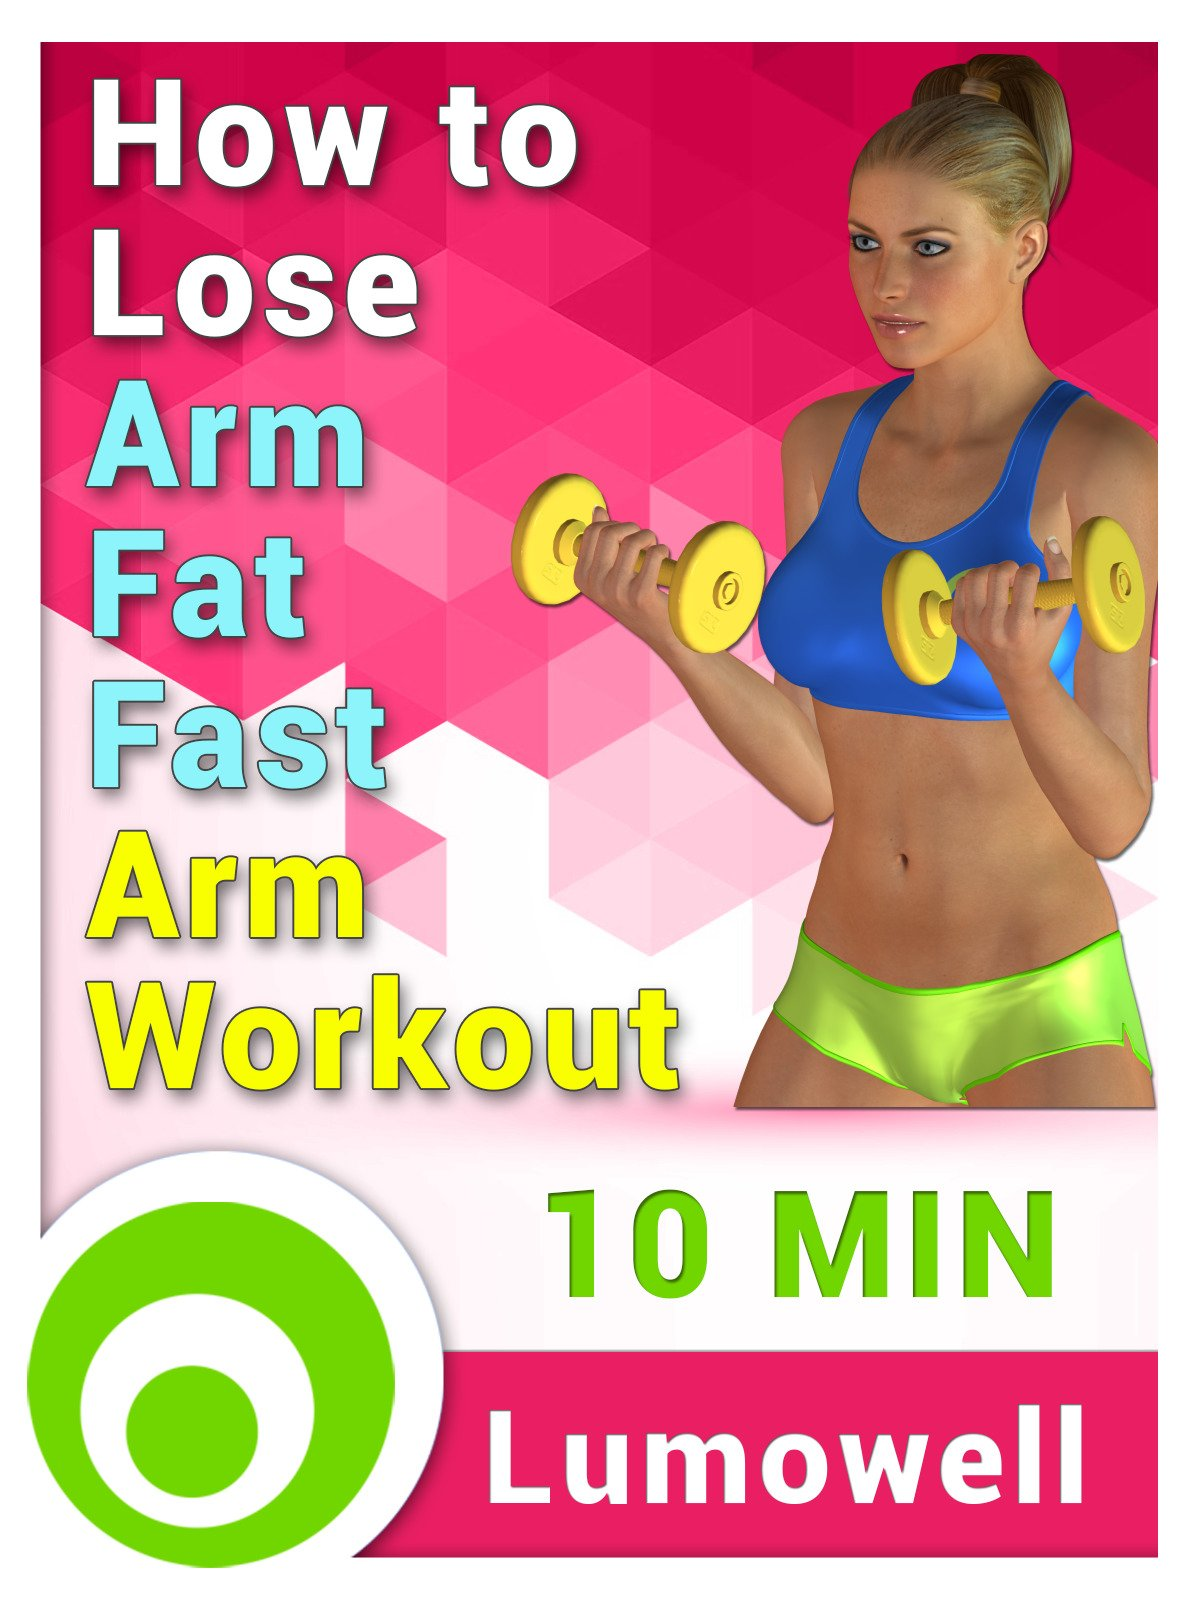 Watch How To Lose Arm Fat Fast Arm Workout On Amazon Prime Video Uk Newonamzprimeuk